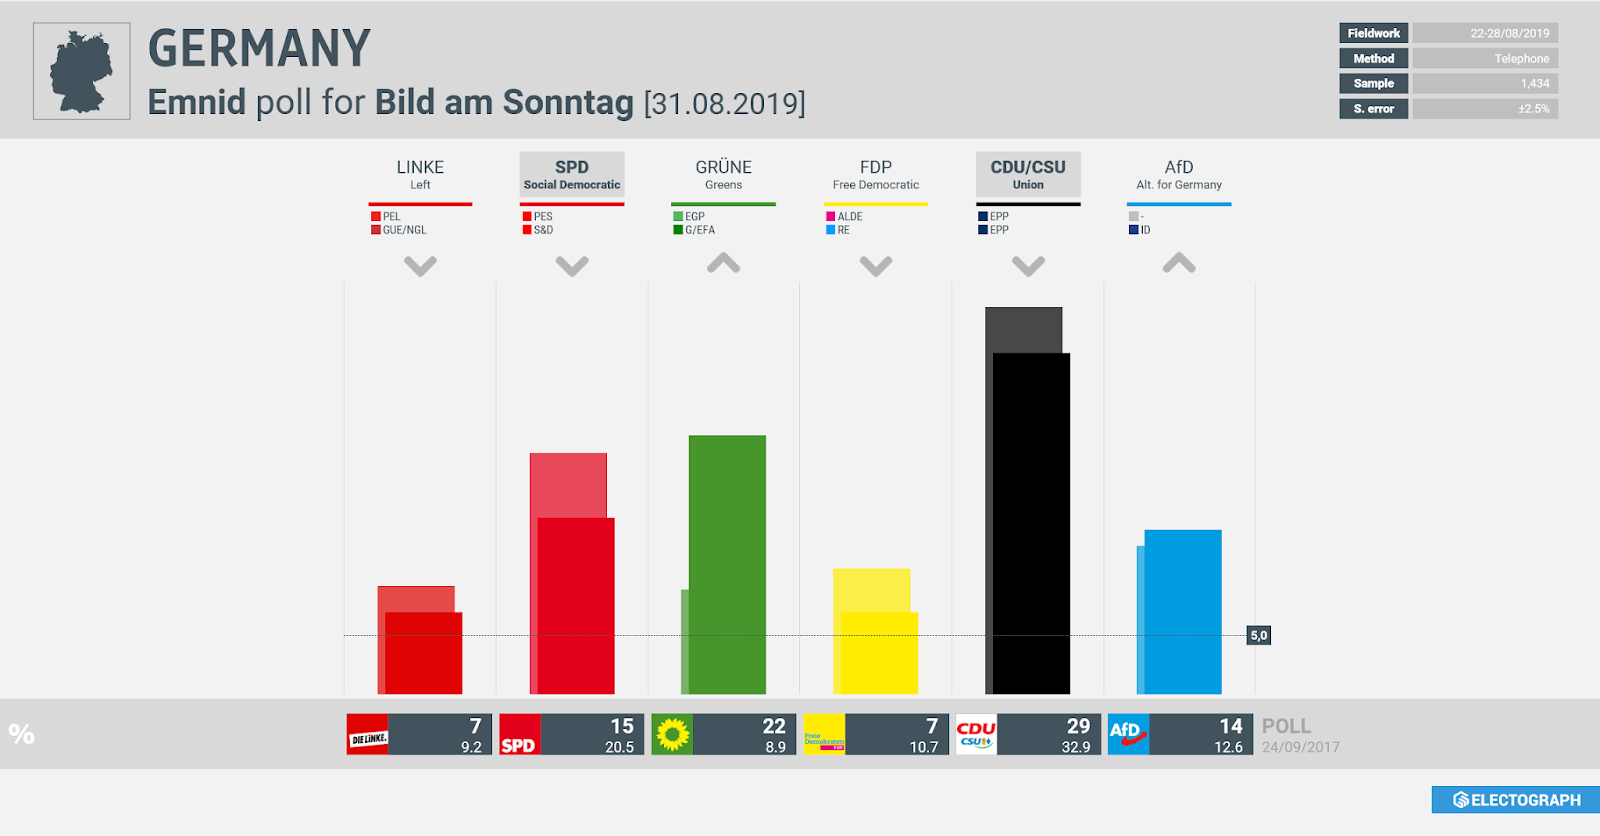 GERMANY: Emnid poll chart for Bild am Sonntag, 31 August 2019